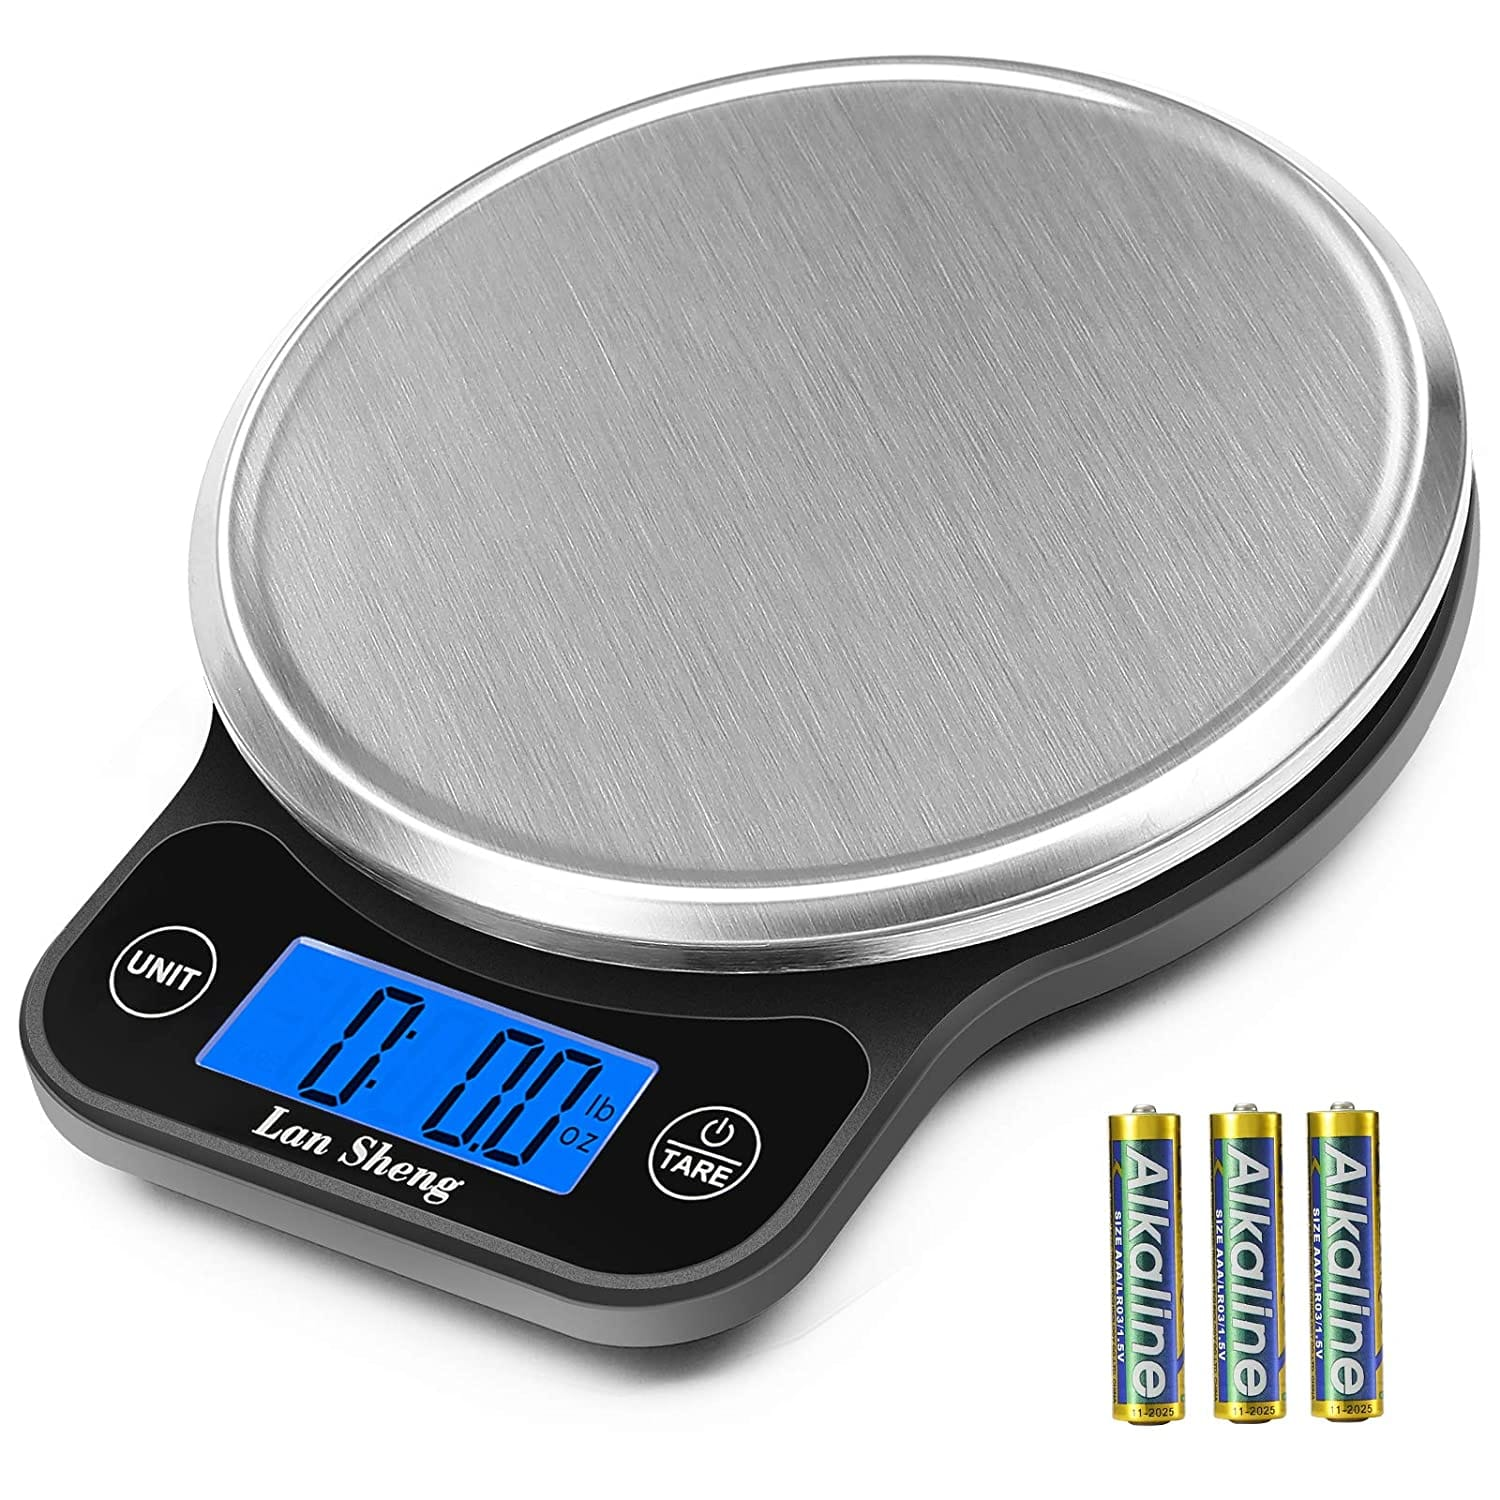 Amazon.com: Lansheng Food Scale, 13lb/6kg Digital Kitchen Scale Weight Grams and oz for Cooking, Baking, and Weight Loss $10.99